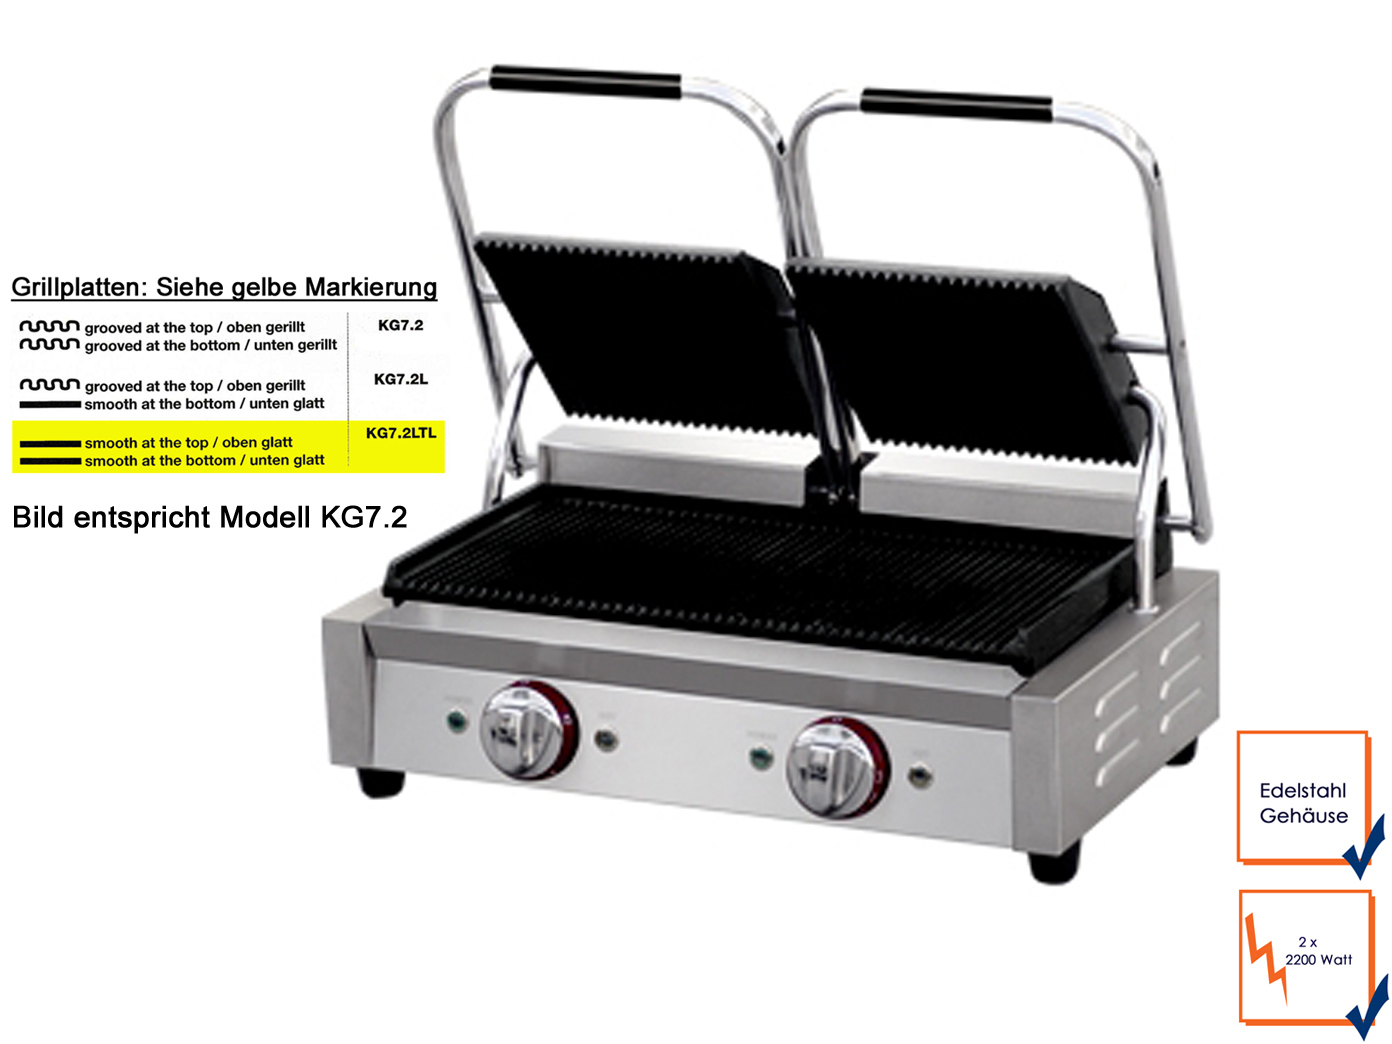 profi edelstahl kontaktgrill platten glatt 2200w gastro. Black Bedroom Furniture Sets. Home Design Ideas